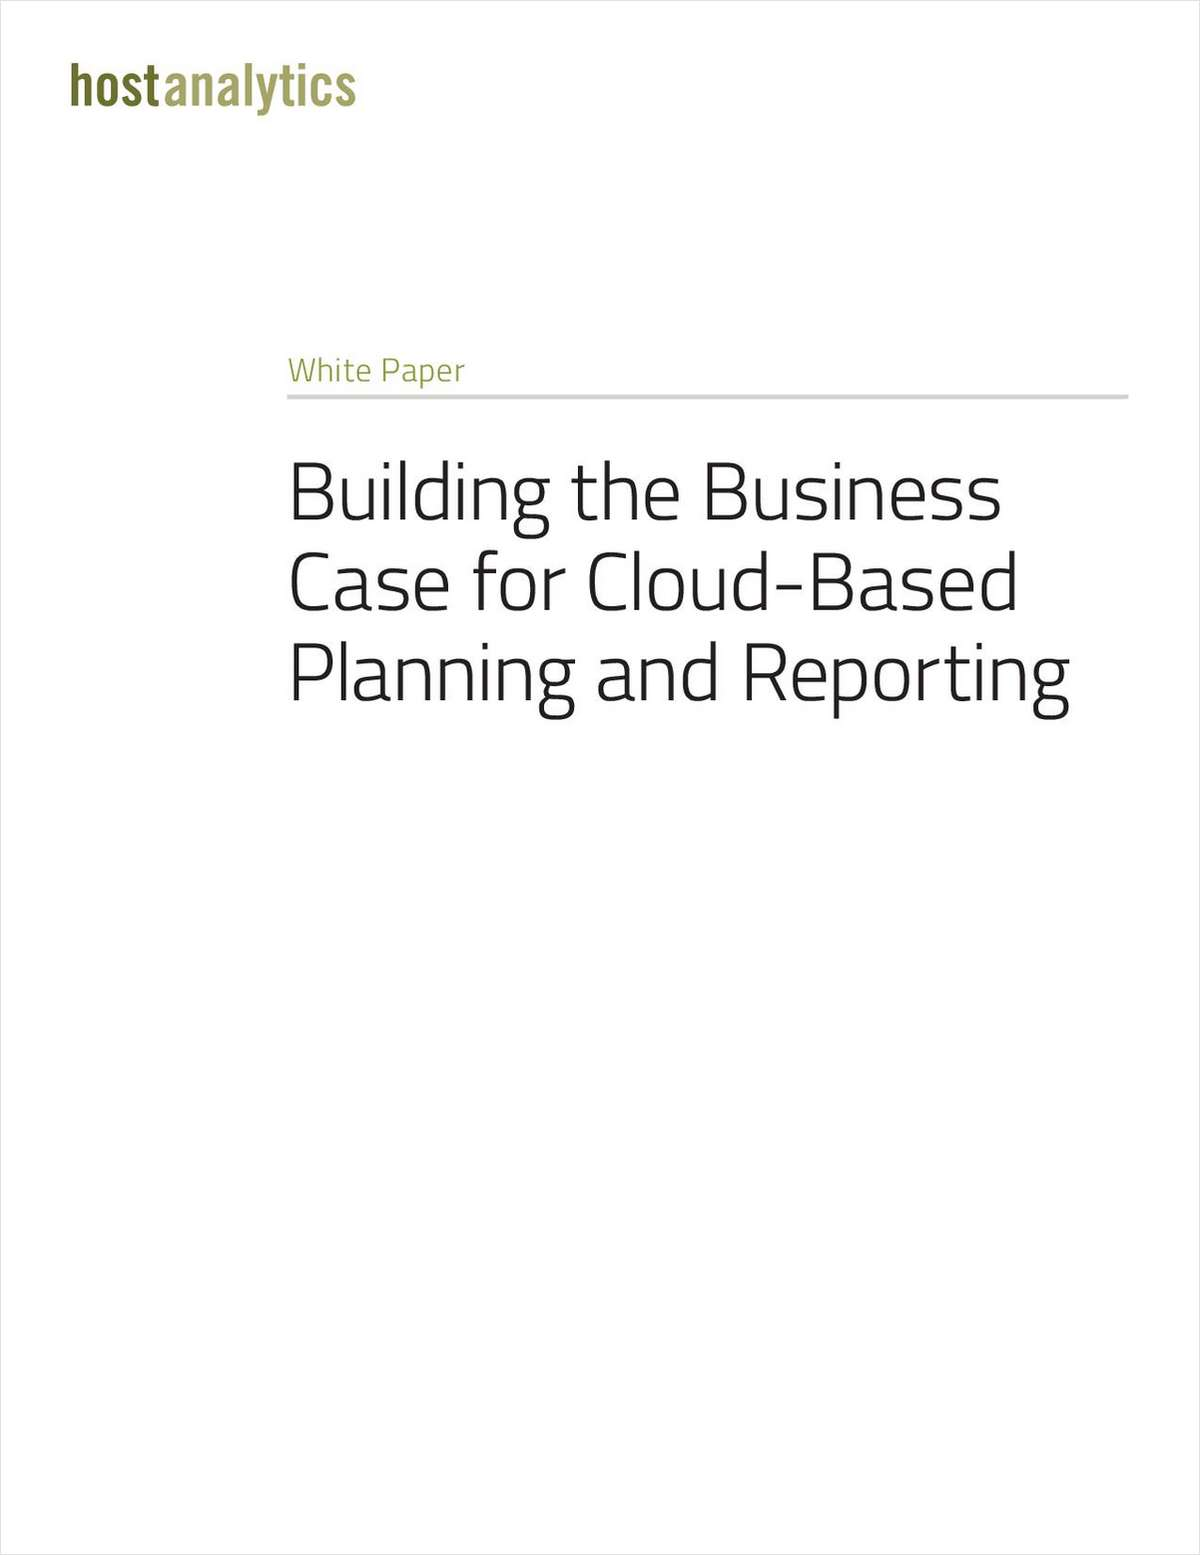 Building the Business Case for Cloud-Based Planning and Reporting